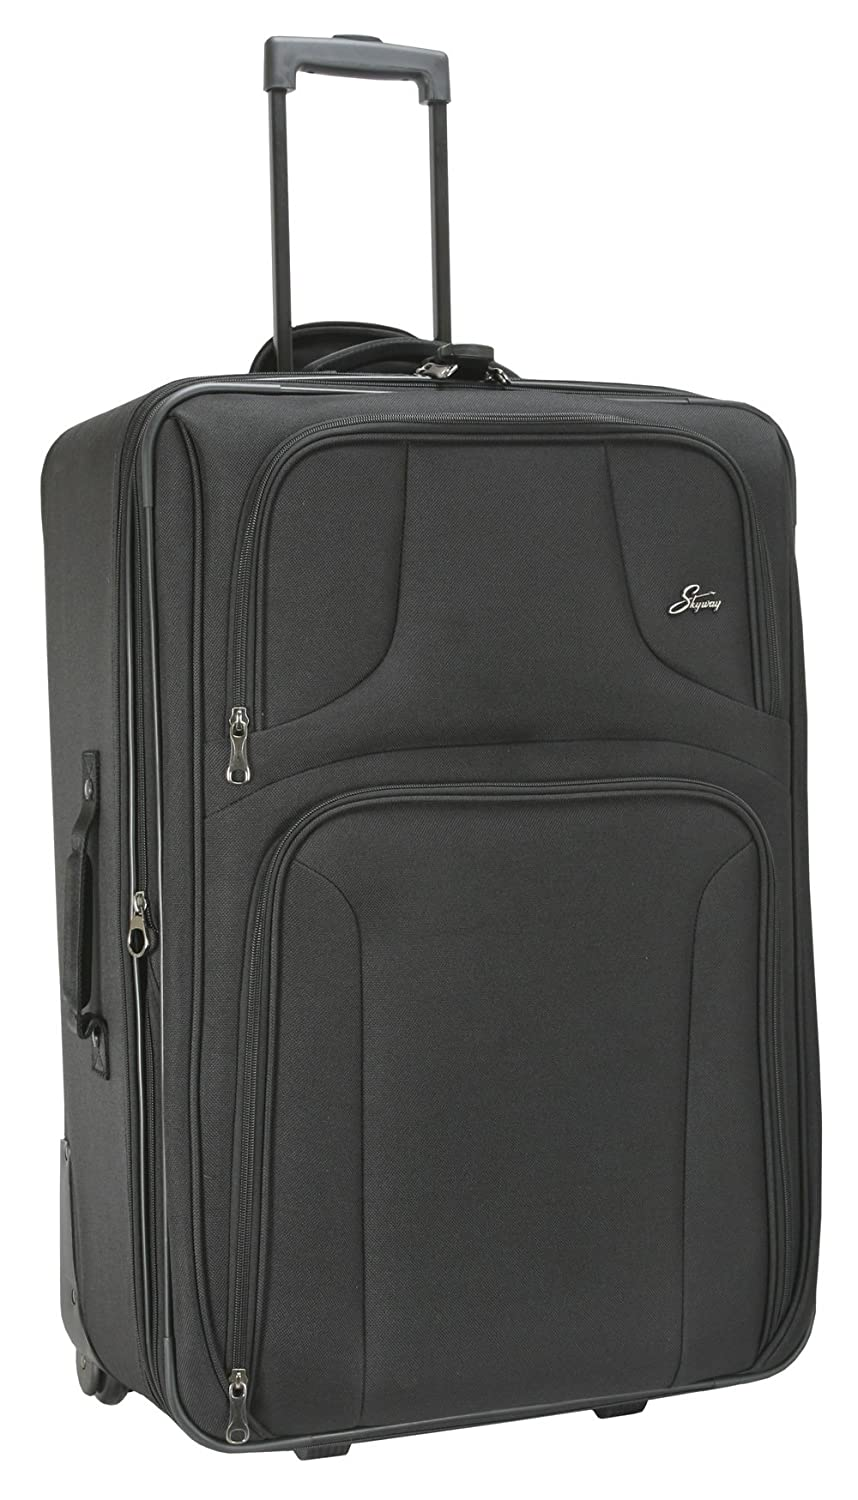 Overseas carry on luggage restrictions weight